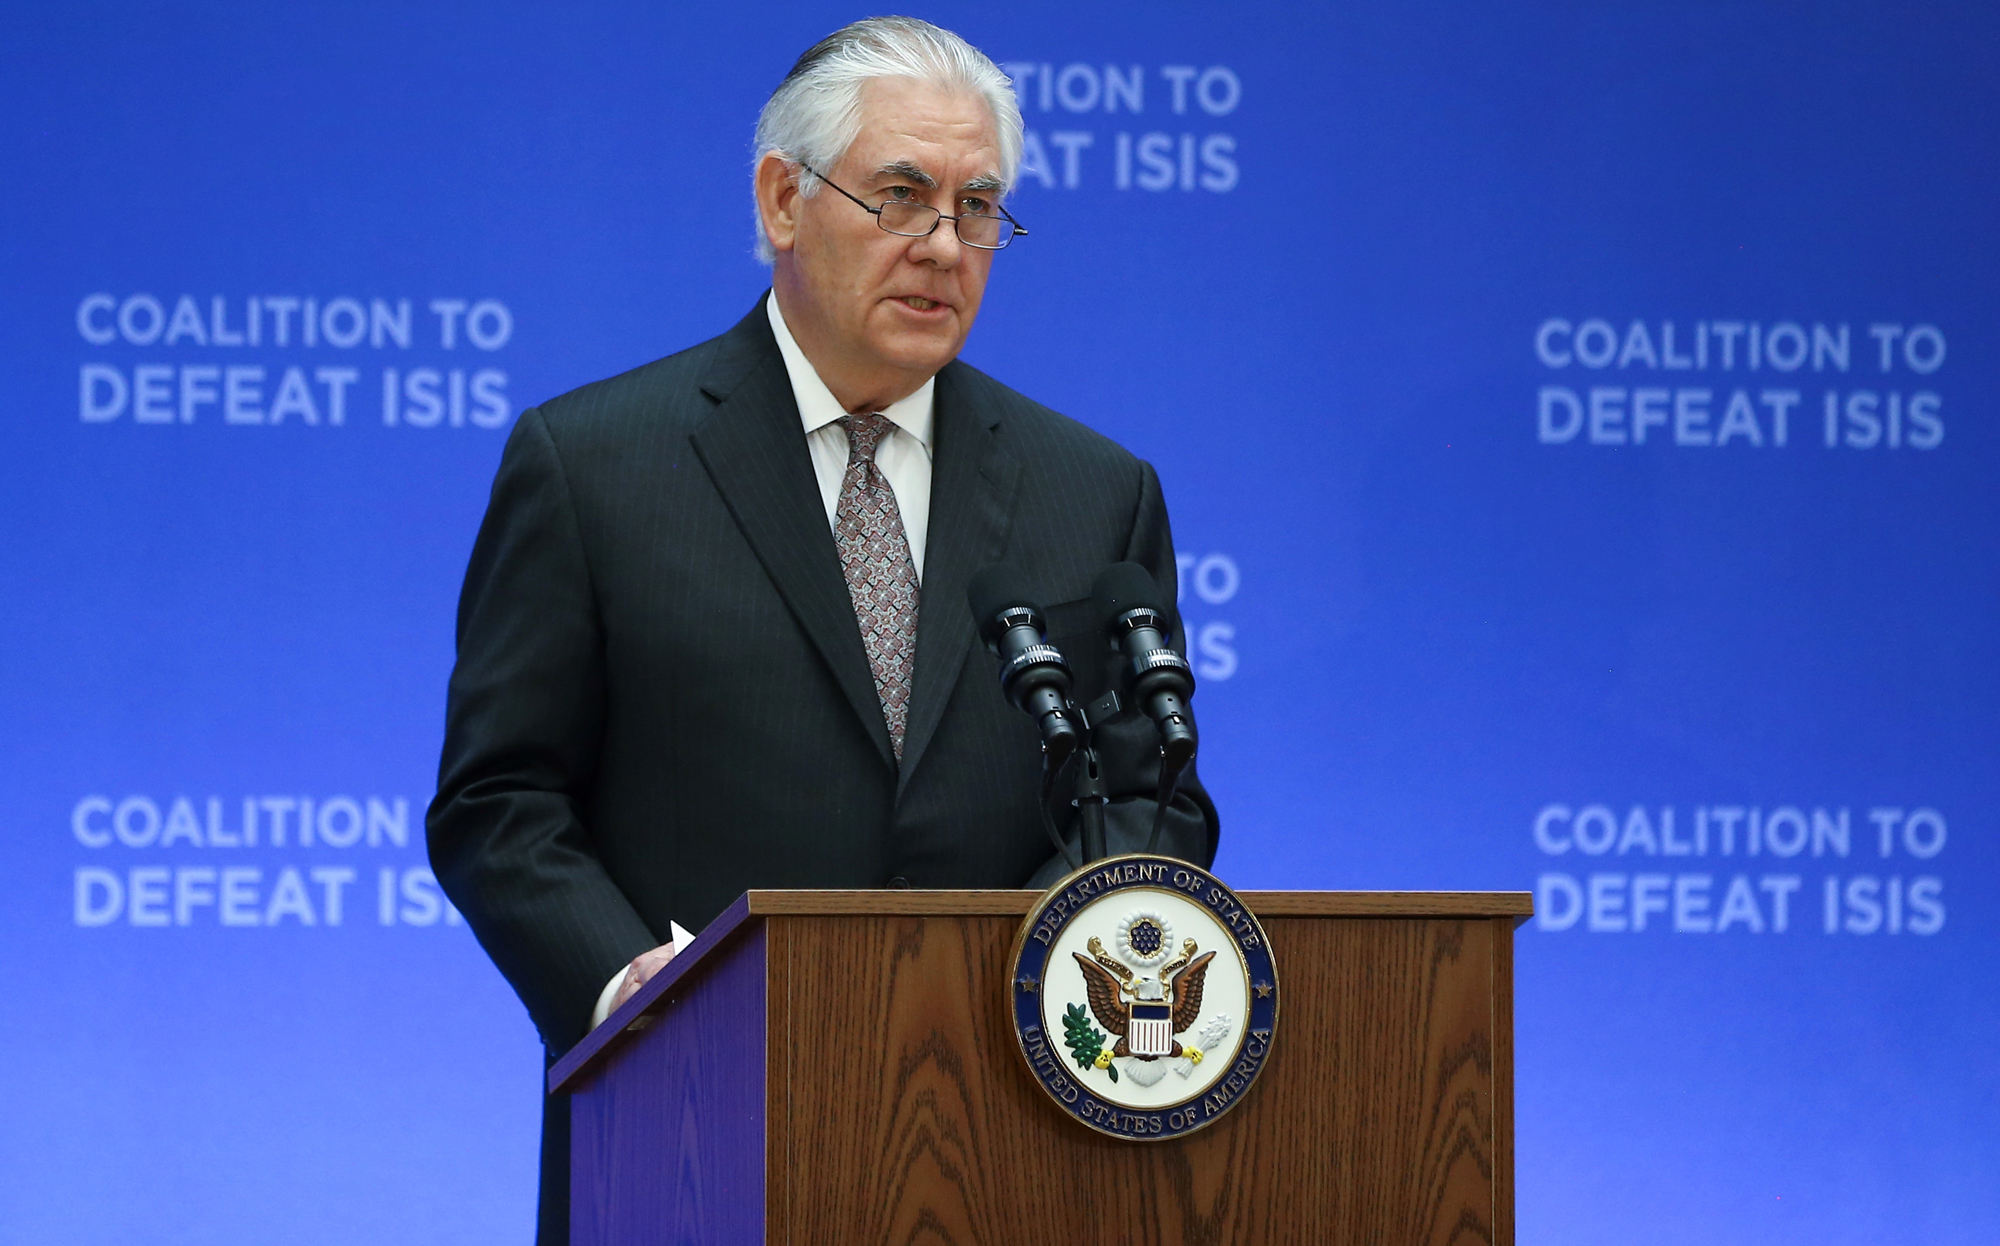 The US Secretary of State Rex Tillerson during the meeting of the coalition to defeat of ISIS in Washington. Photo: Cem Ozdel/Anadolu Agency/Getty Images